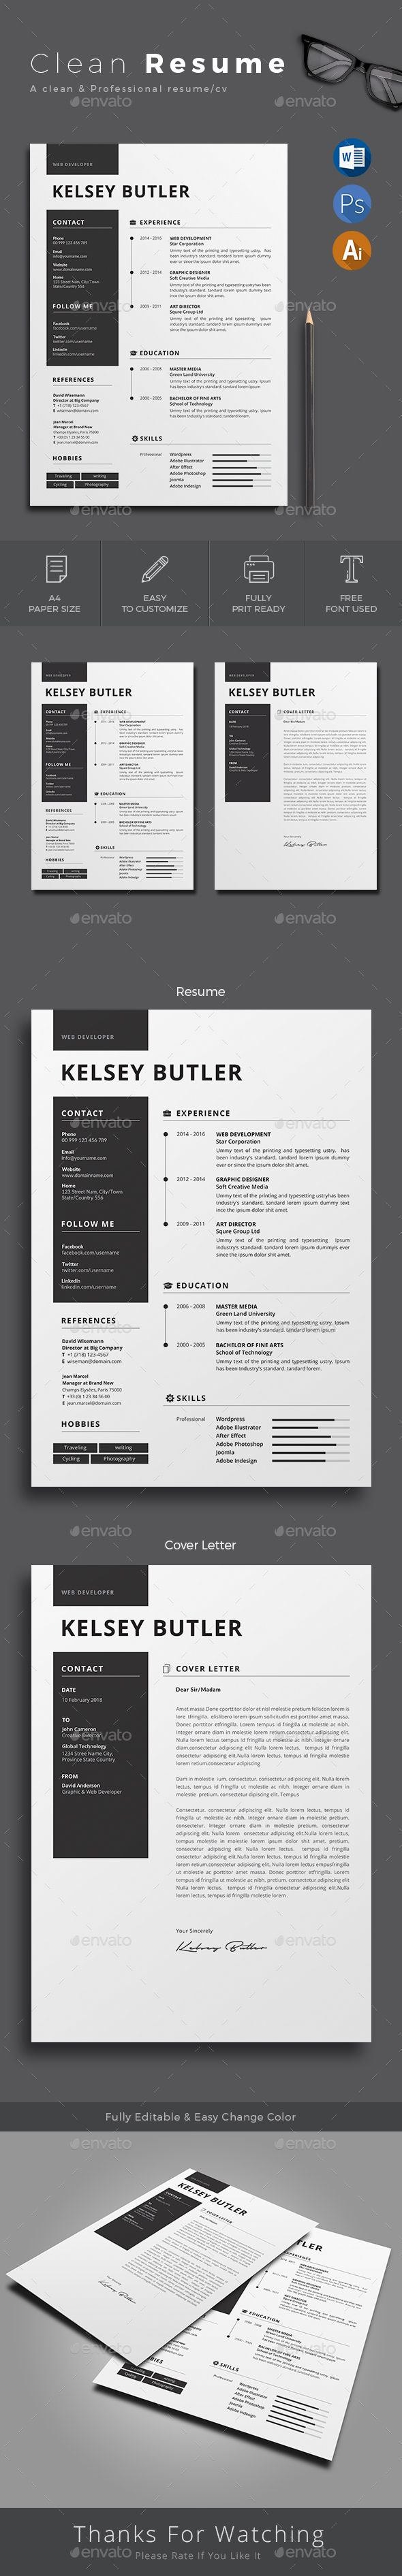 Resume 1086 best Design